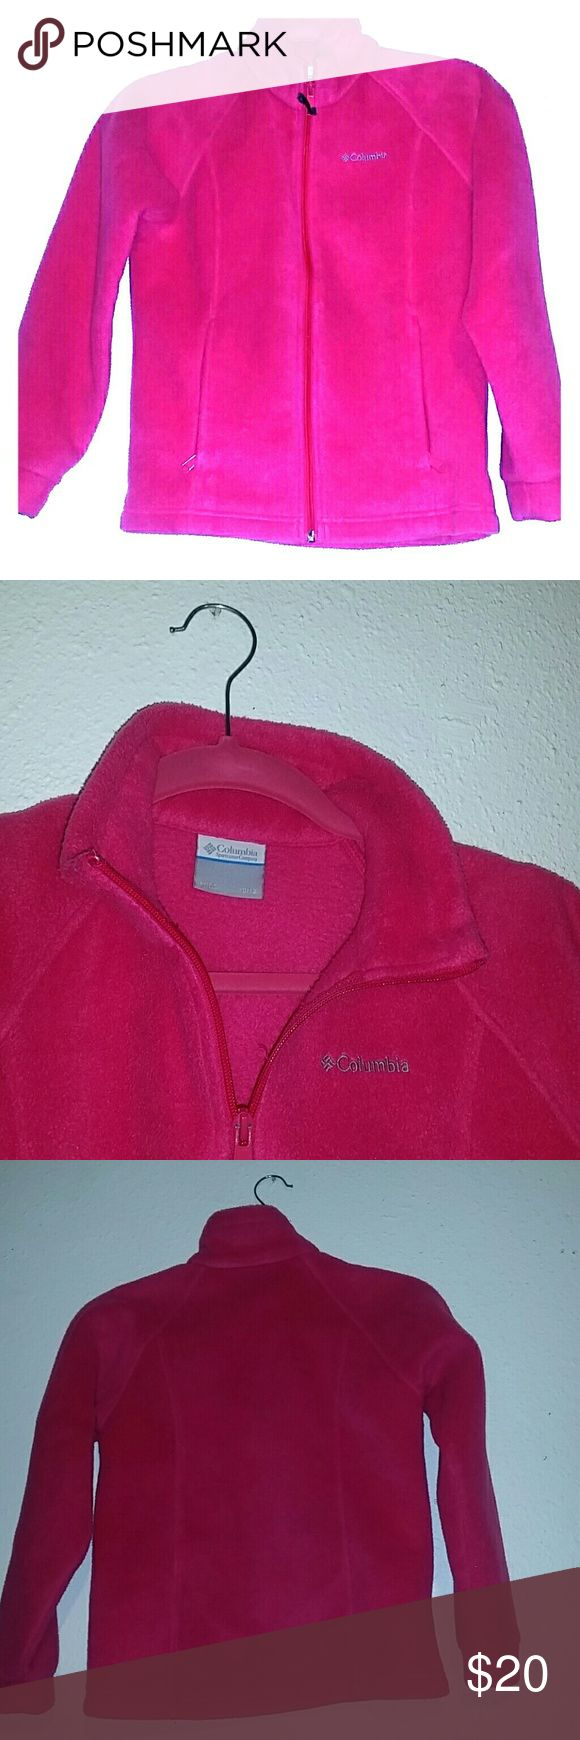 Colombia fleece Columbia classic, this is a soft and cozy fleece  Zippered hand pockets keep small items secure Colombia sportswear company  Other